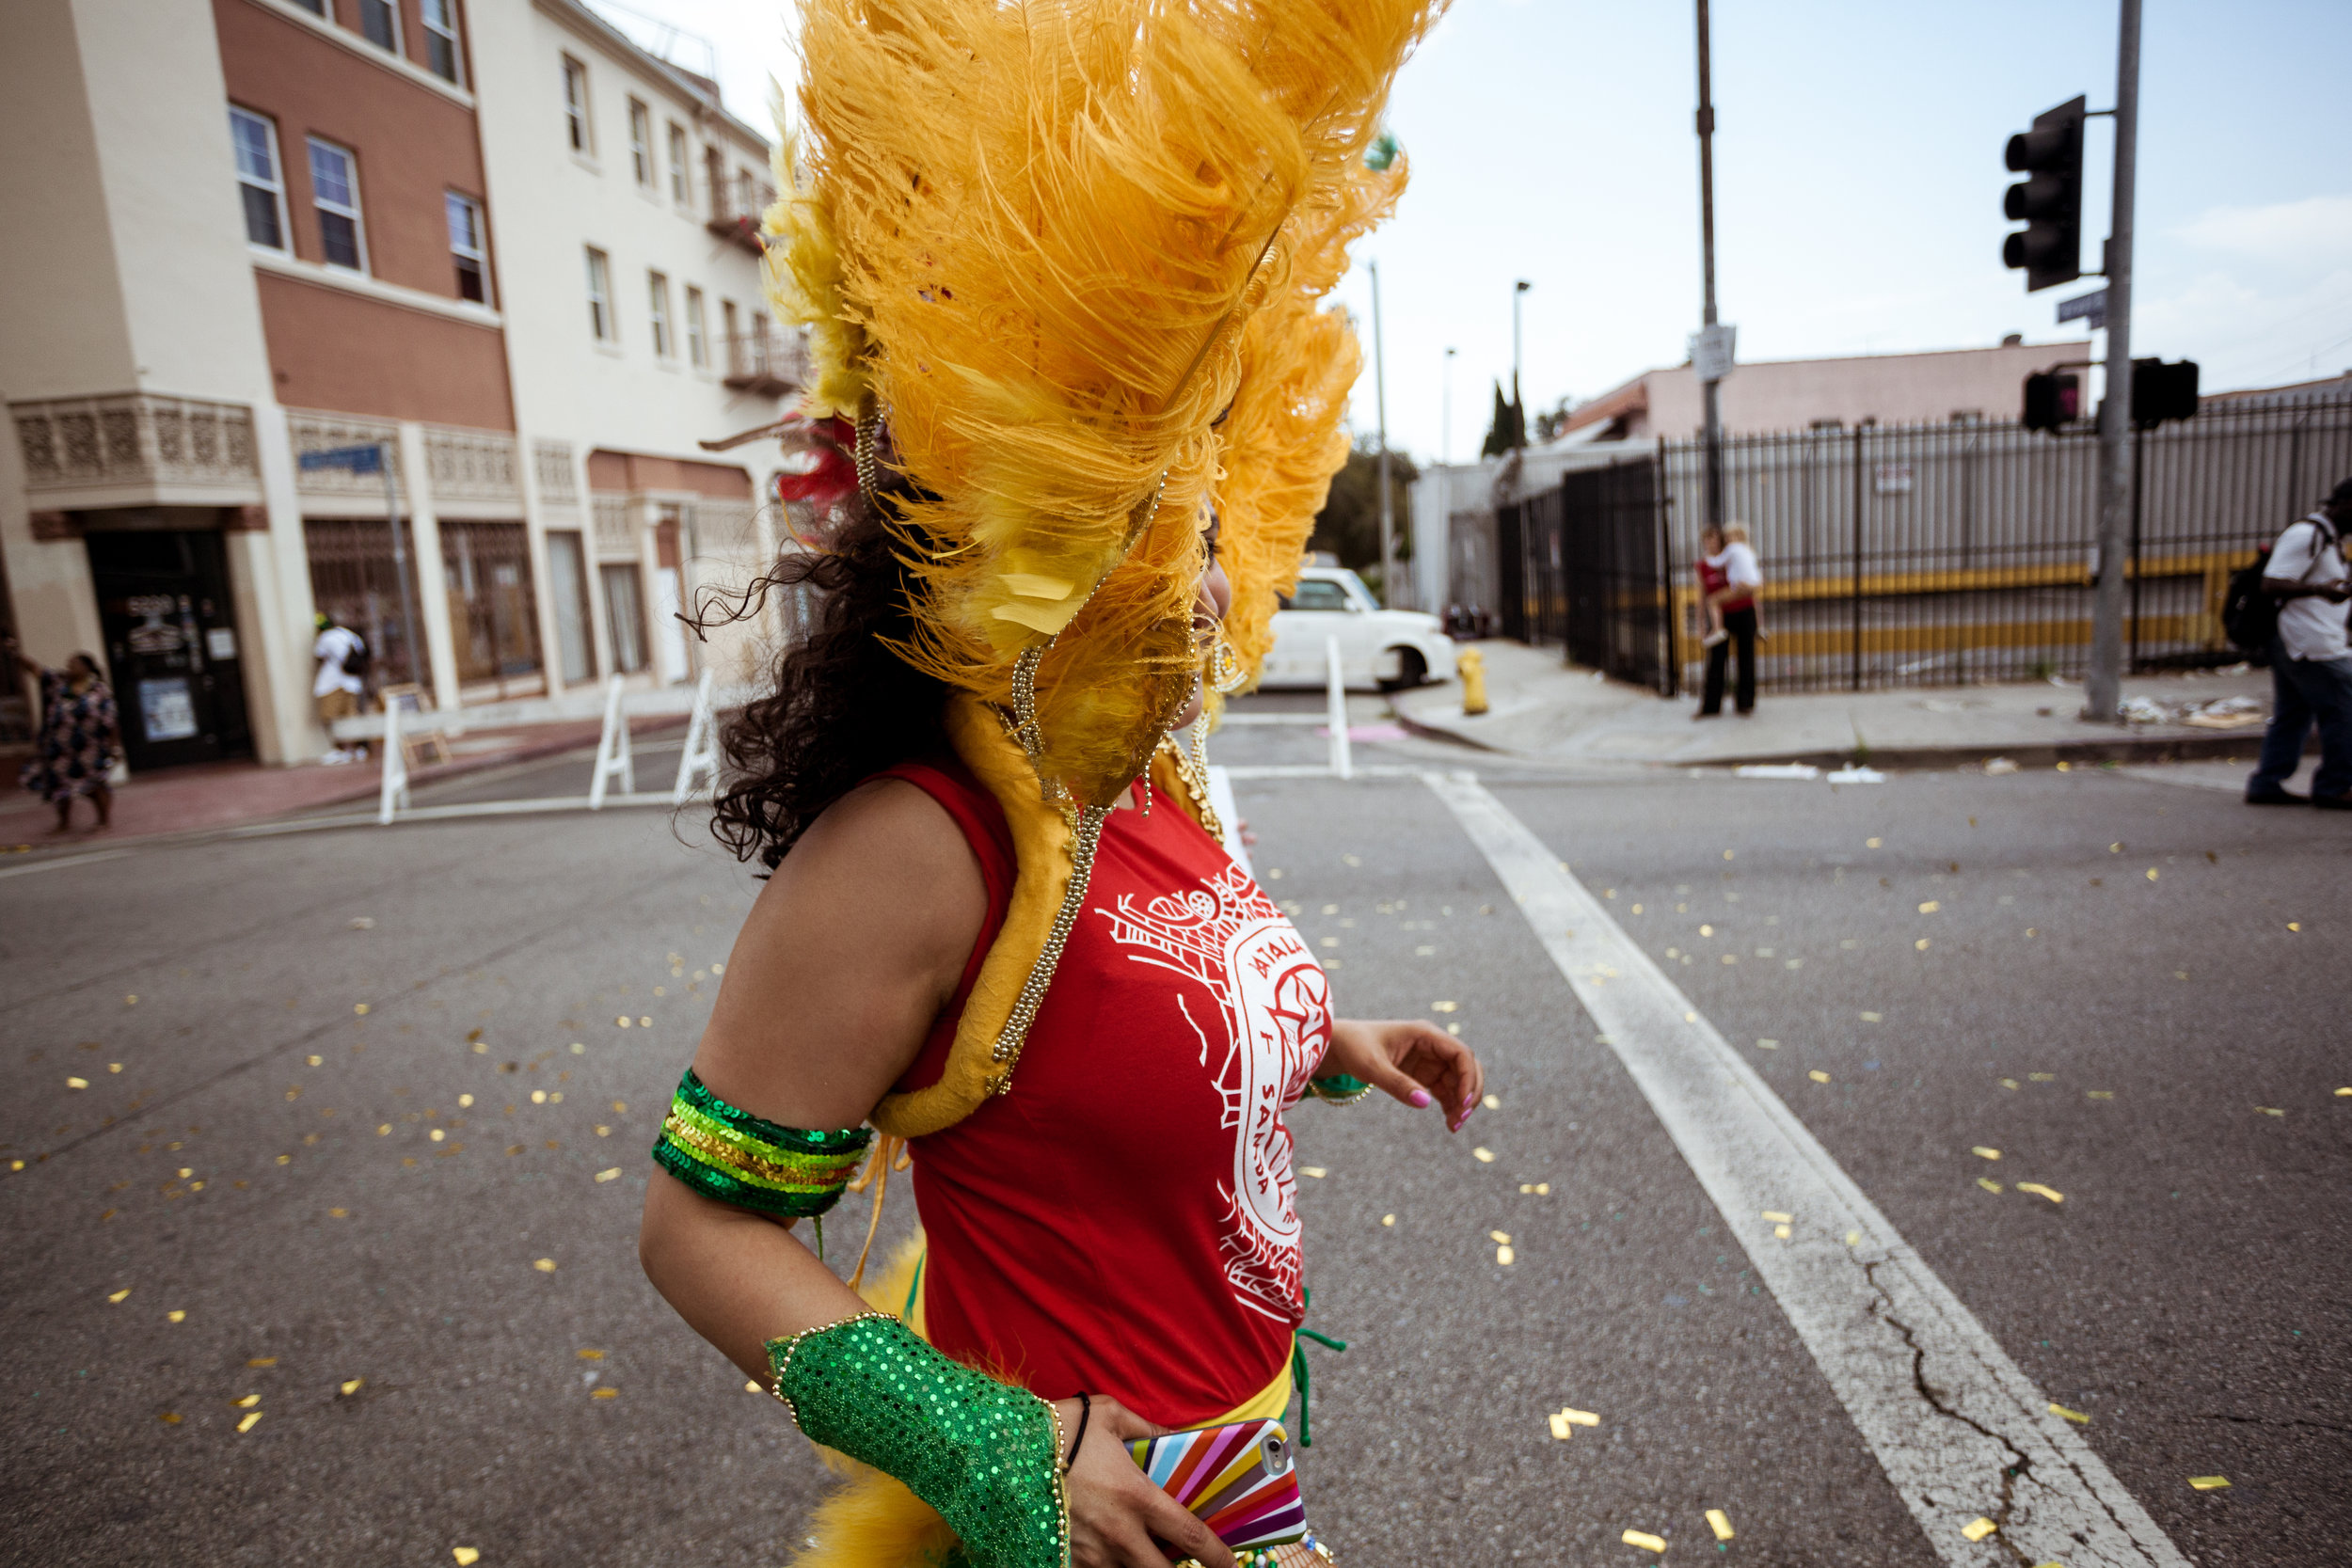 Chacon Images_Carnaval_Print-5782.jpg